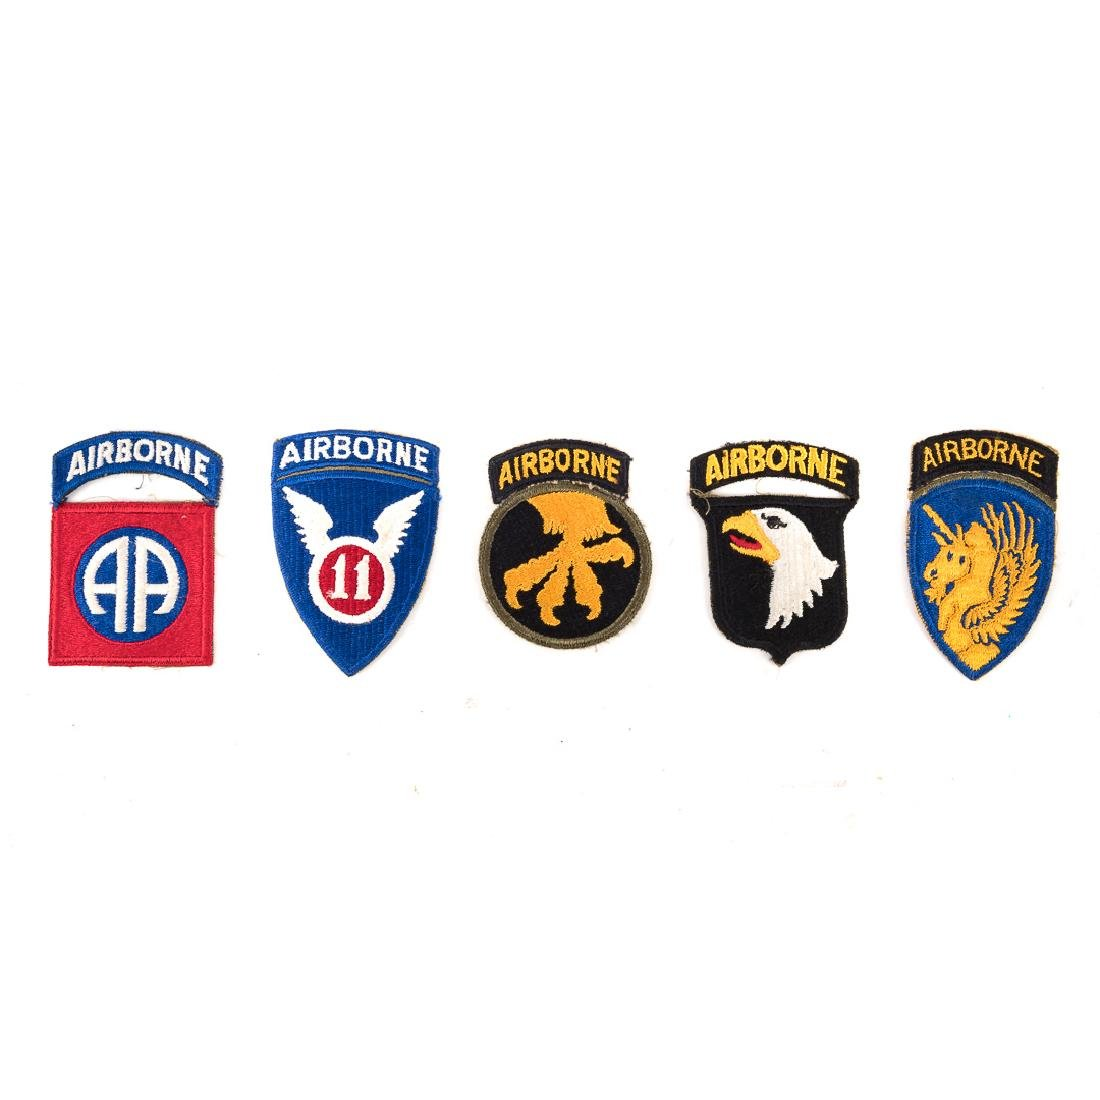 Five US Airborne Div. patches